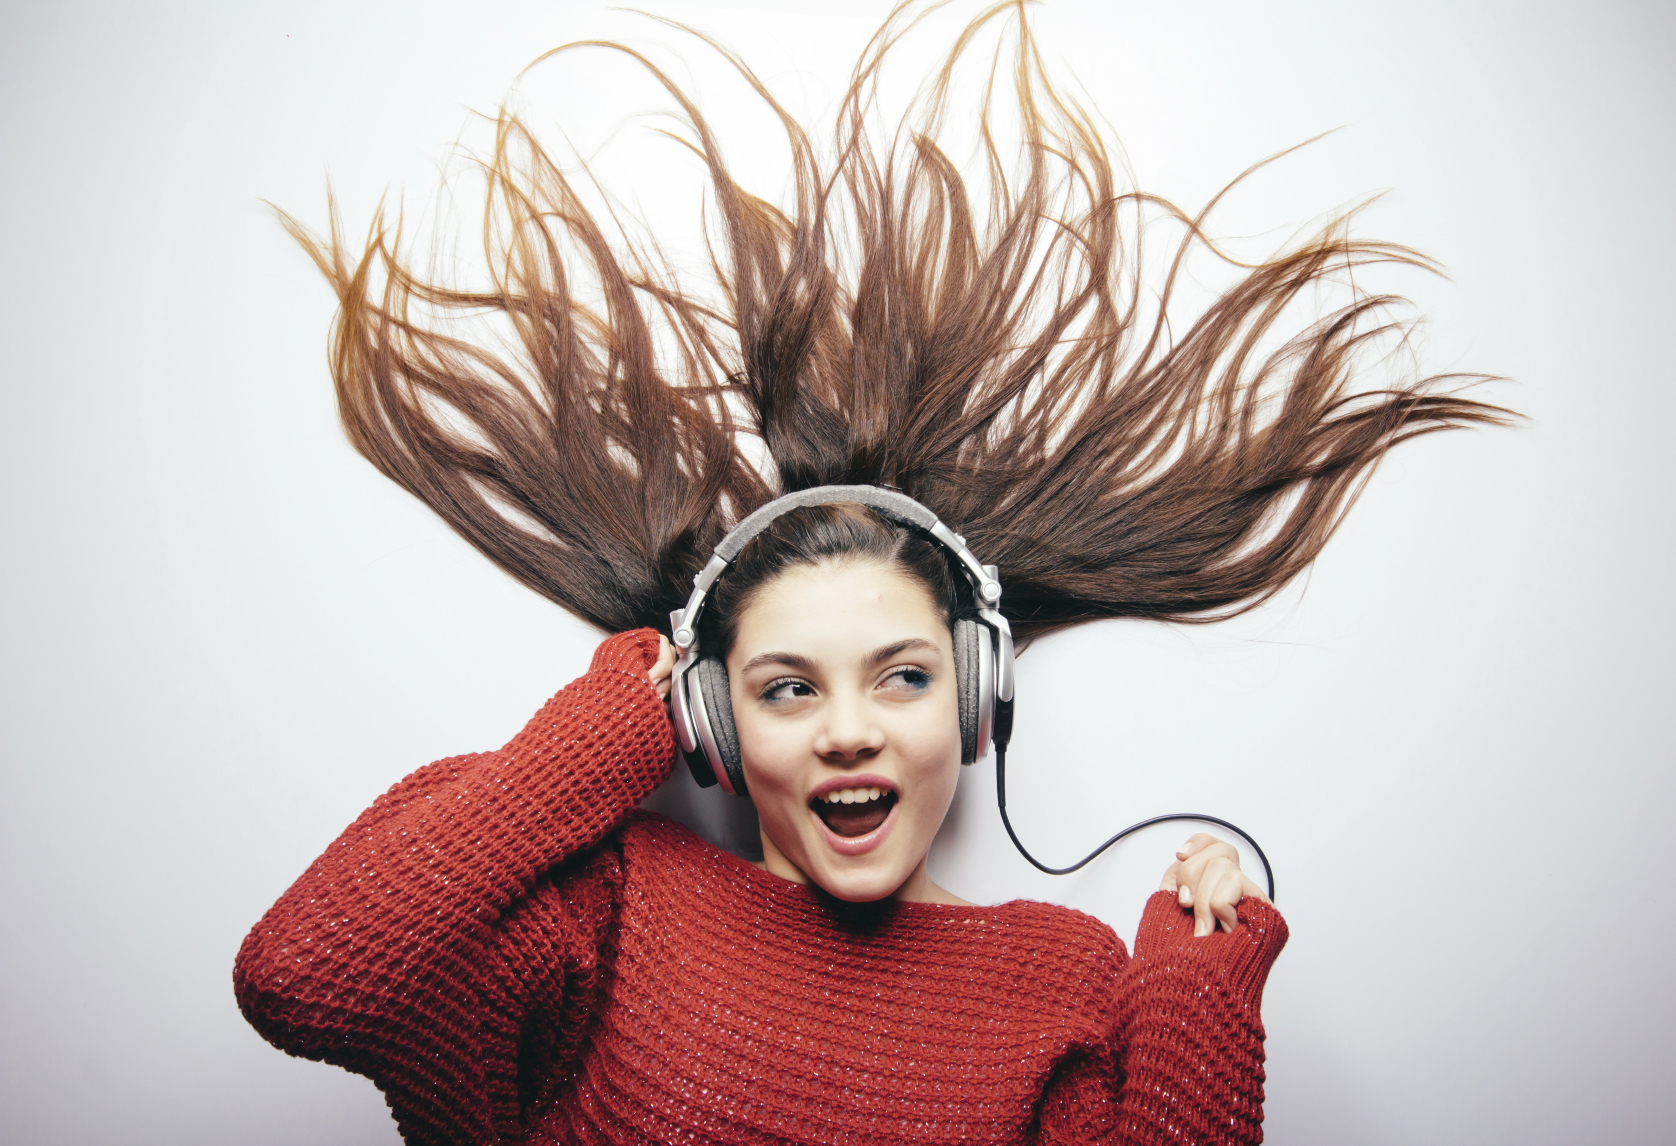 How to listen to music for free